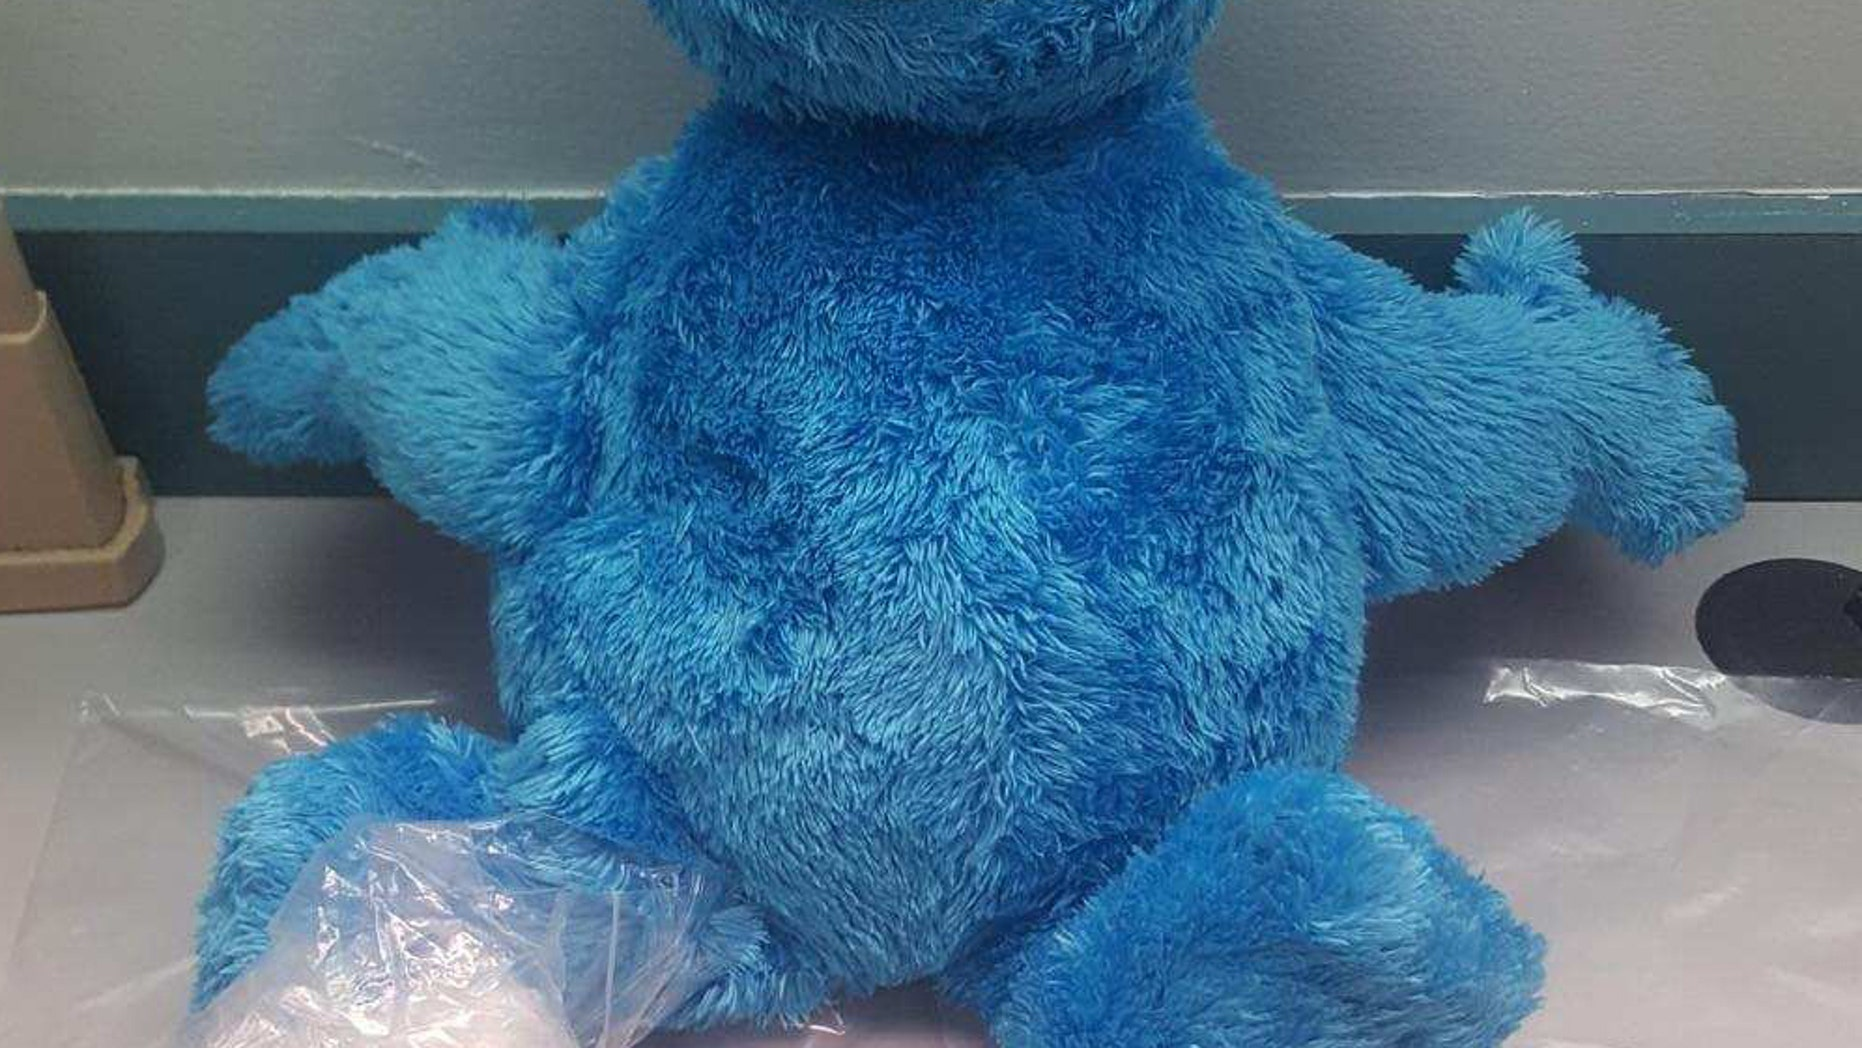 Florida deputies found a stash of cocaine hidden inside a Cookie Monster doll during a traffic stop.